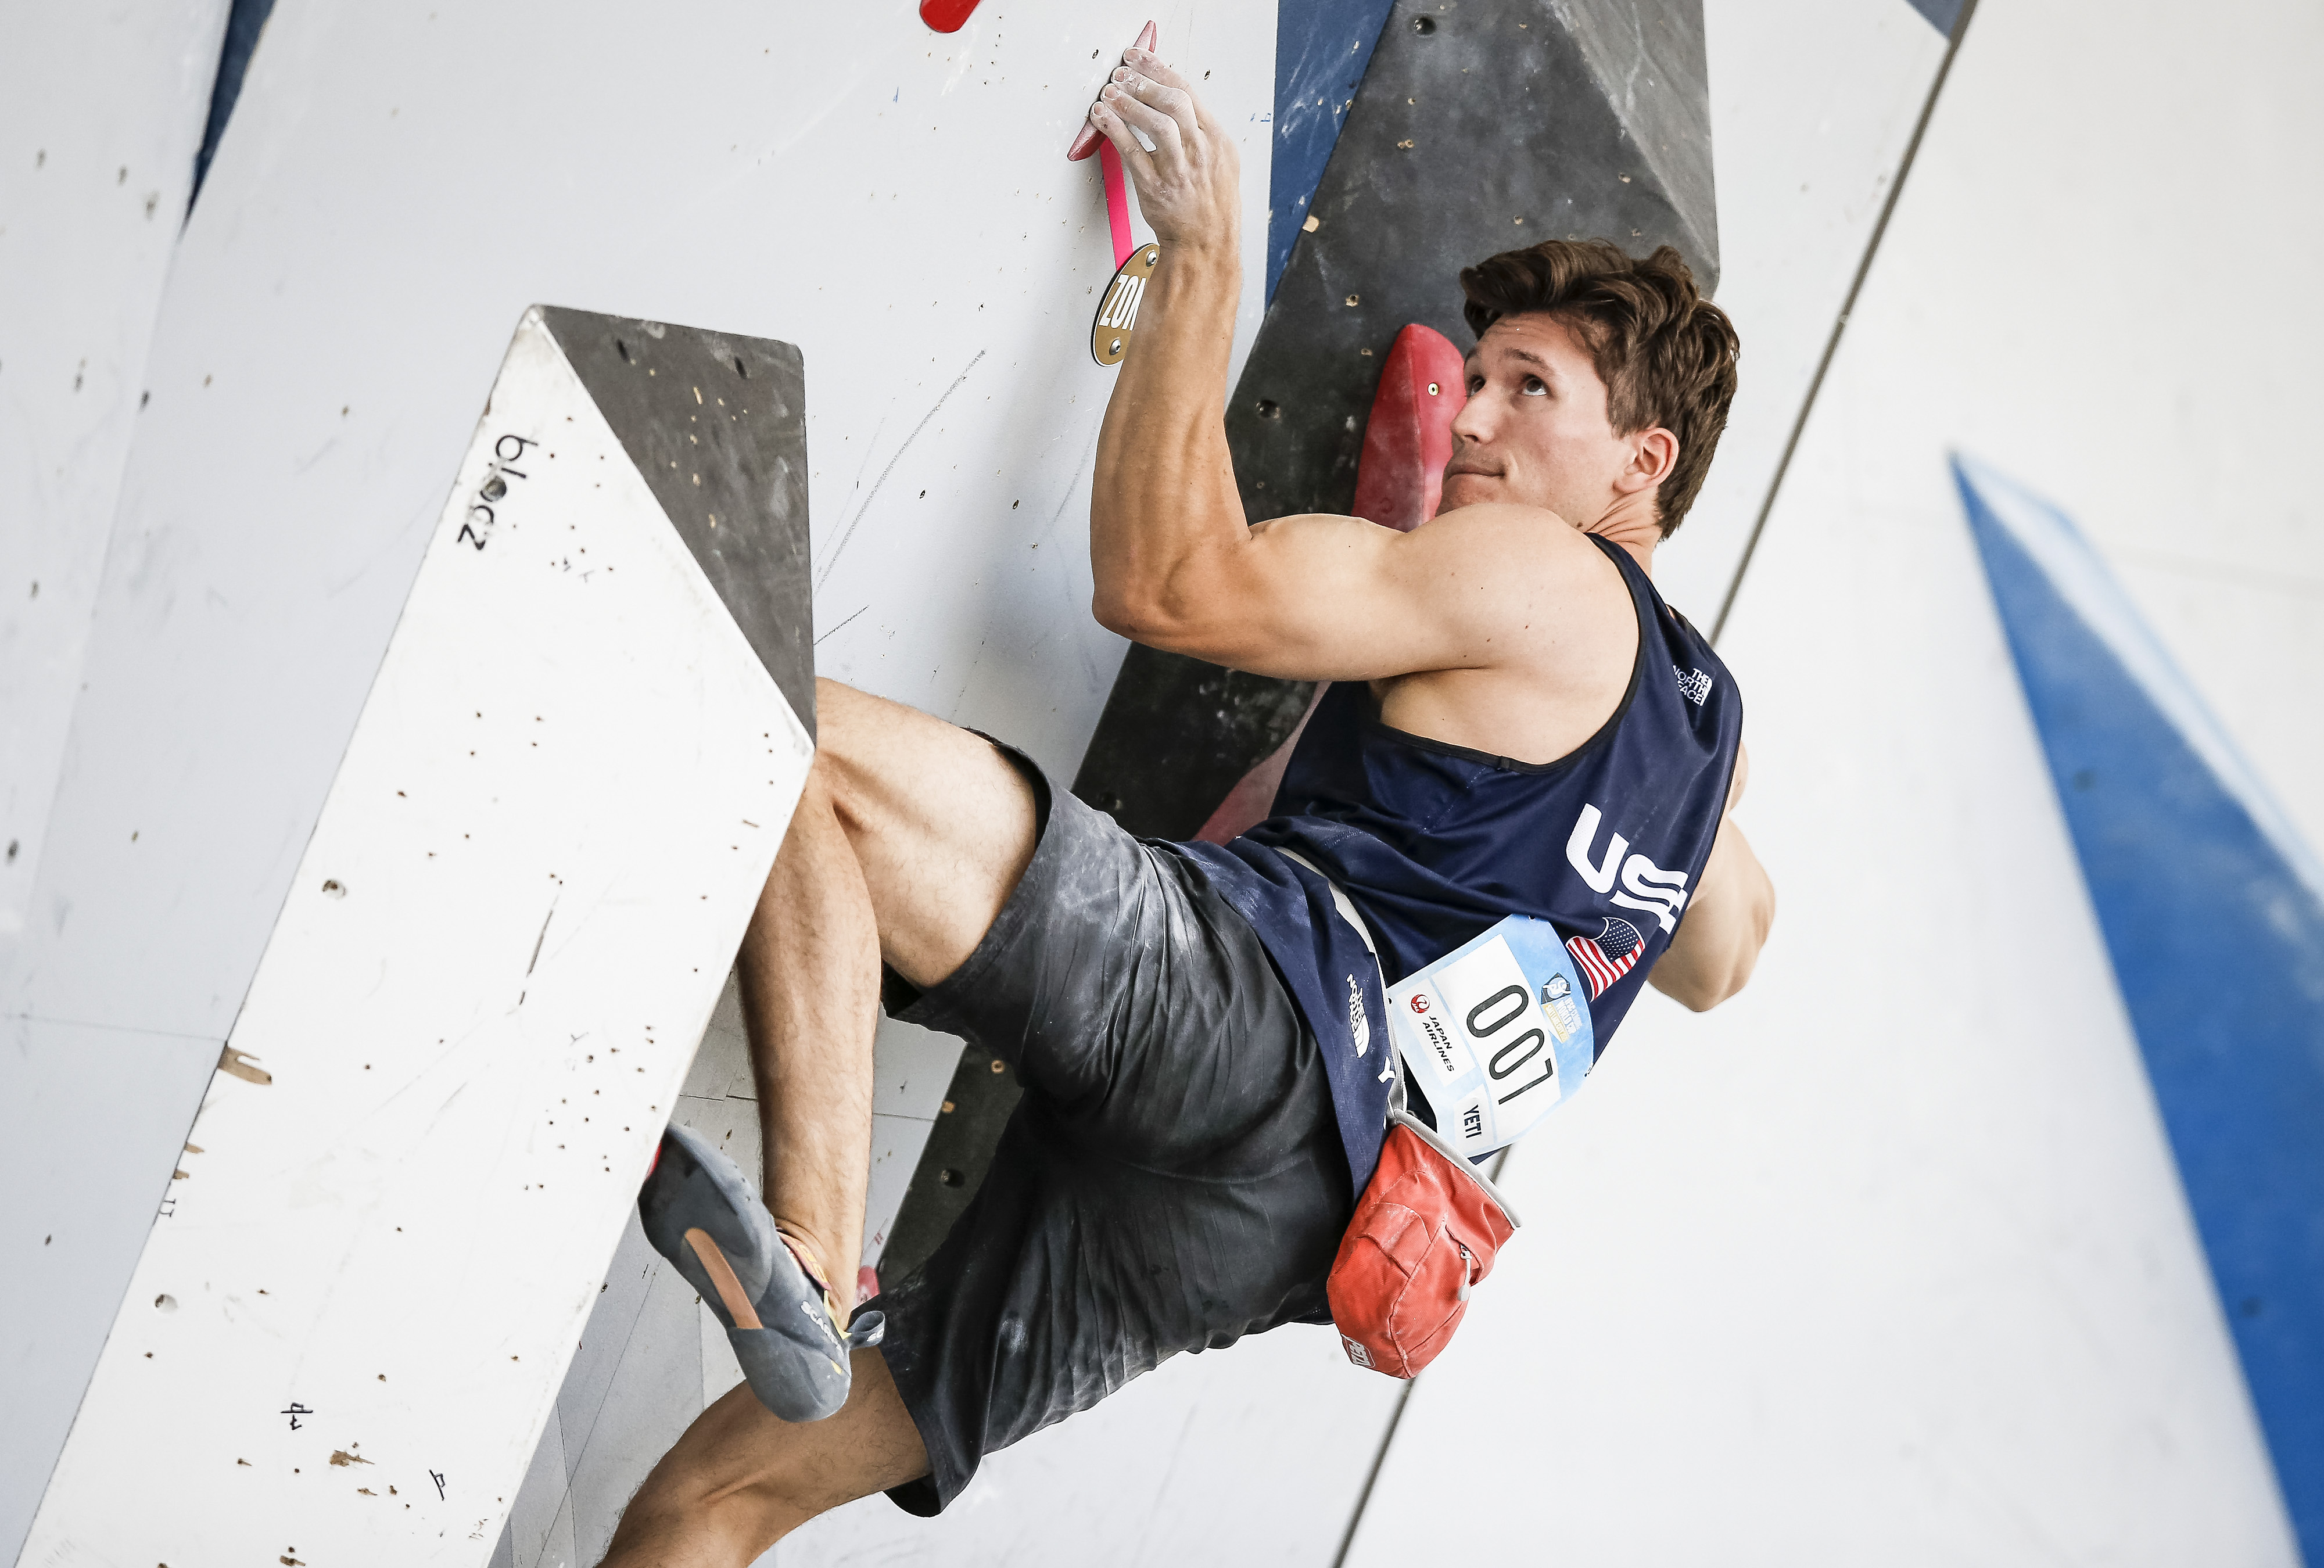 """""""The hands are our main tool,"""" says U.S. Olympic climber Nathaniel Coleman, seen here during the bouldering qualifications of the IFSC Climbing World Cup on May 29 in Salt Lake City, Utah."""